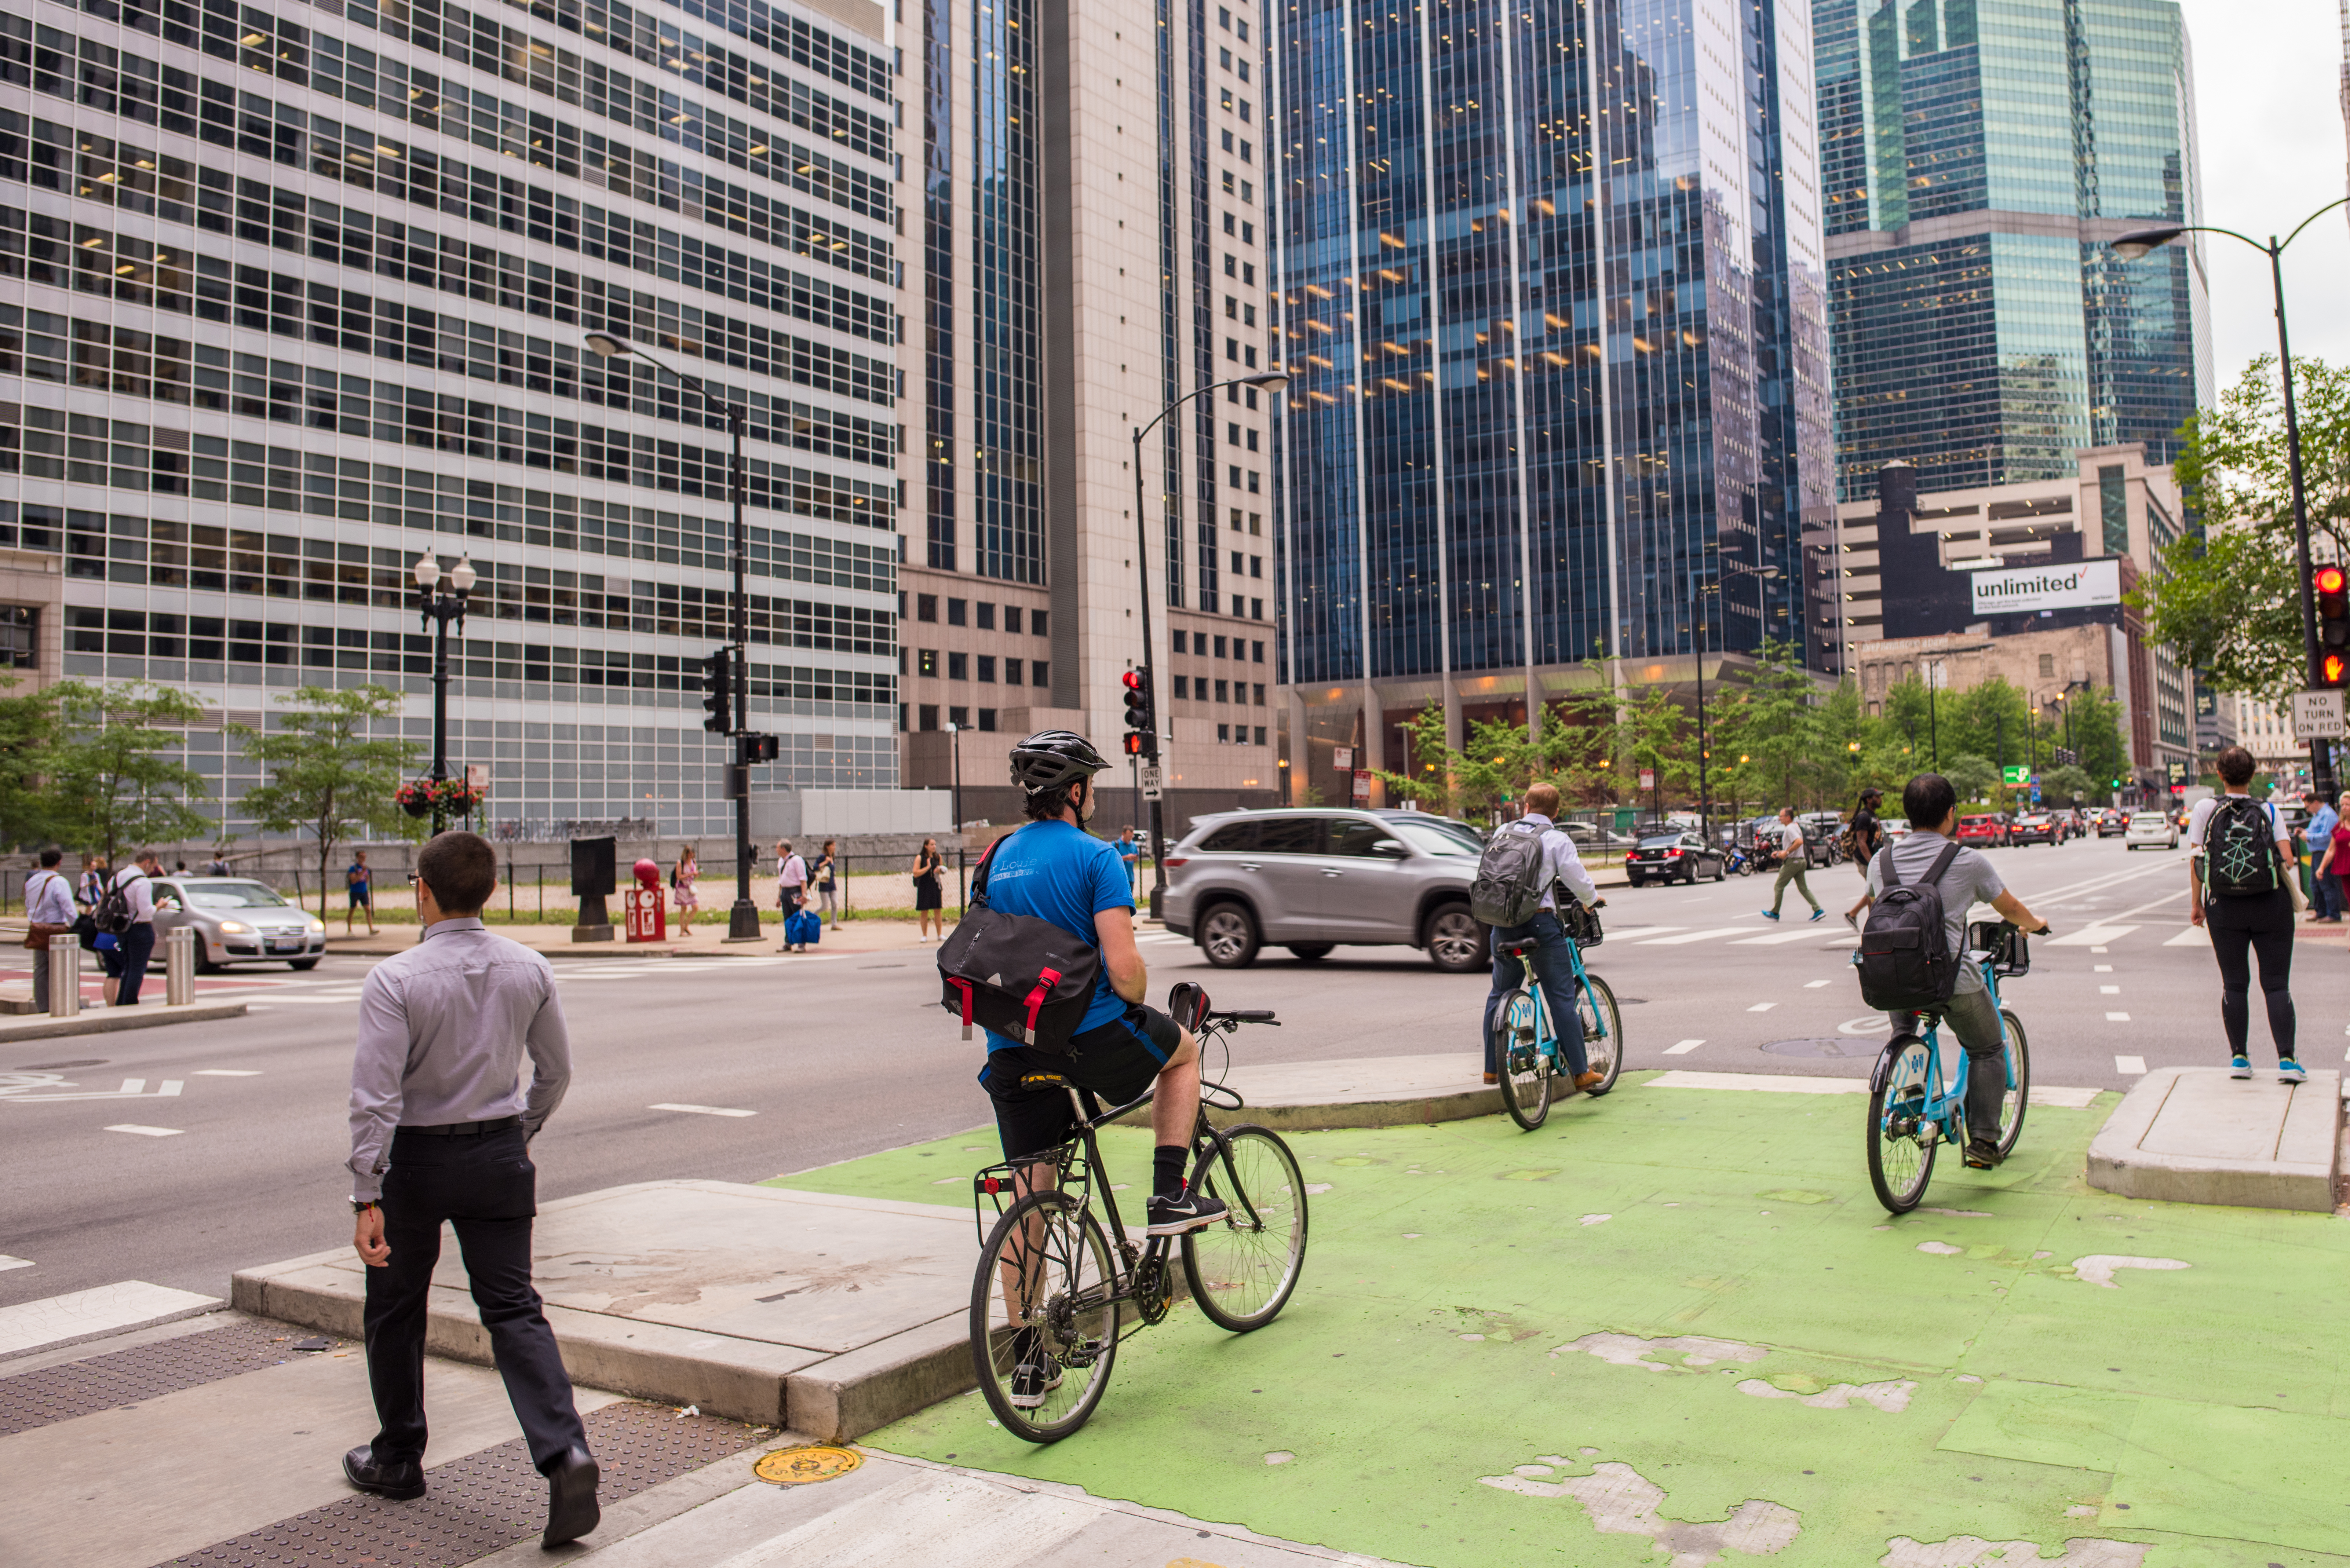 Chicago needs safer streets and protected bike lanes now, advocates say